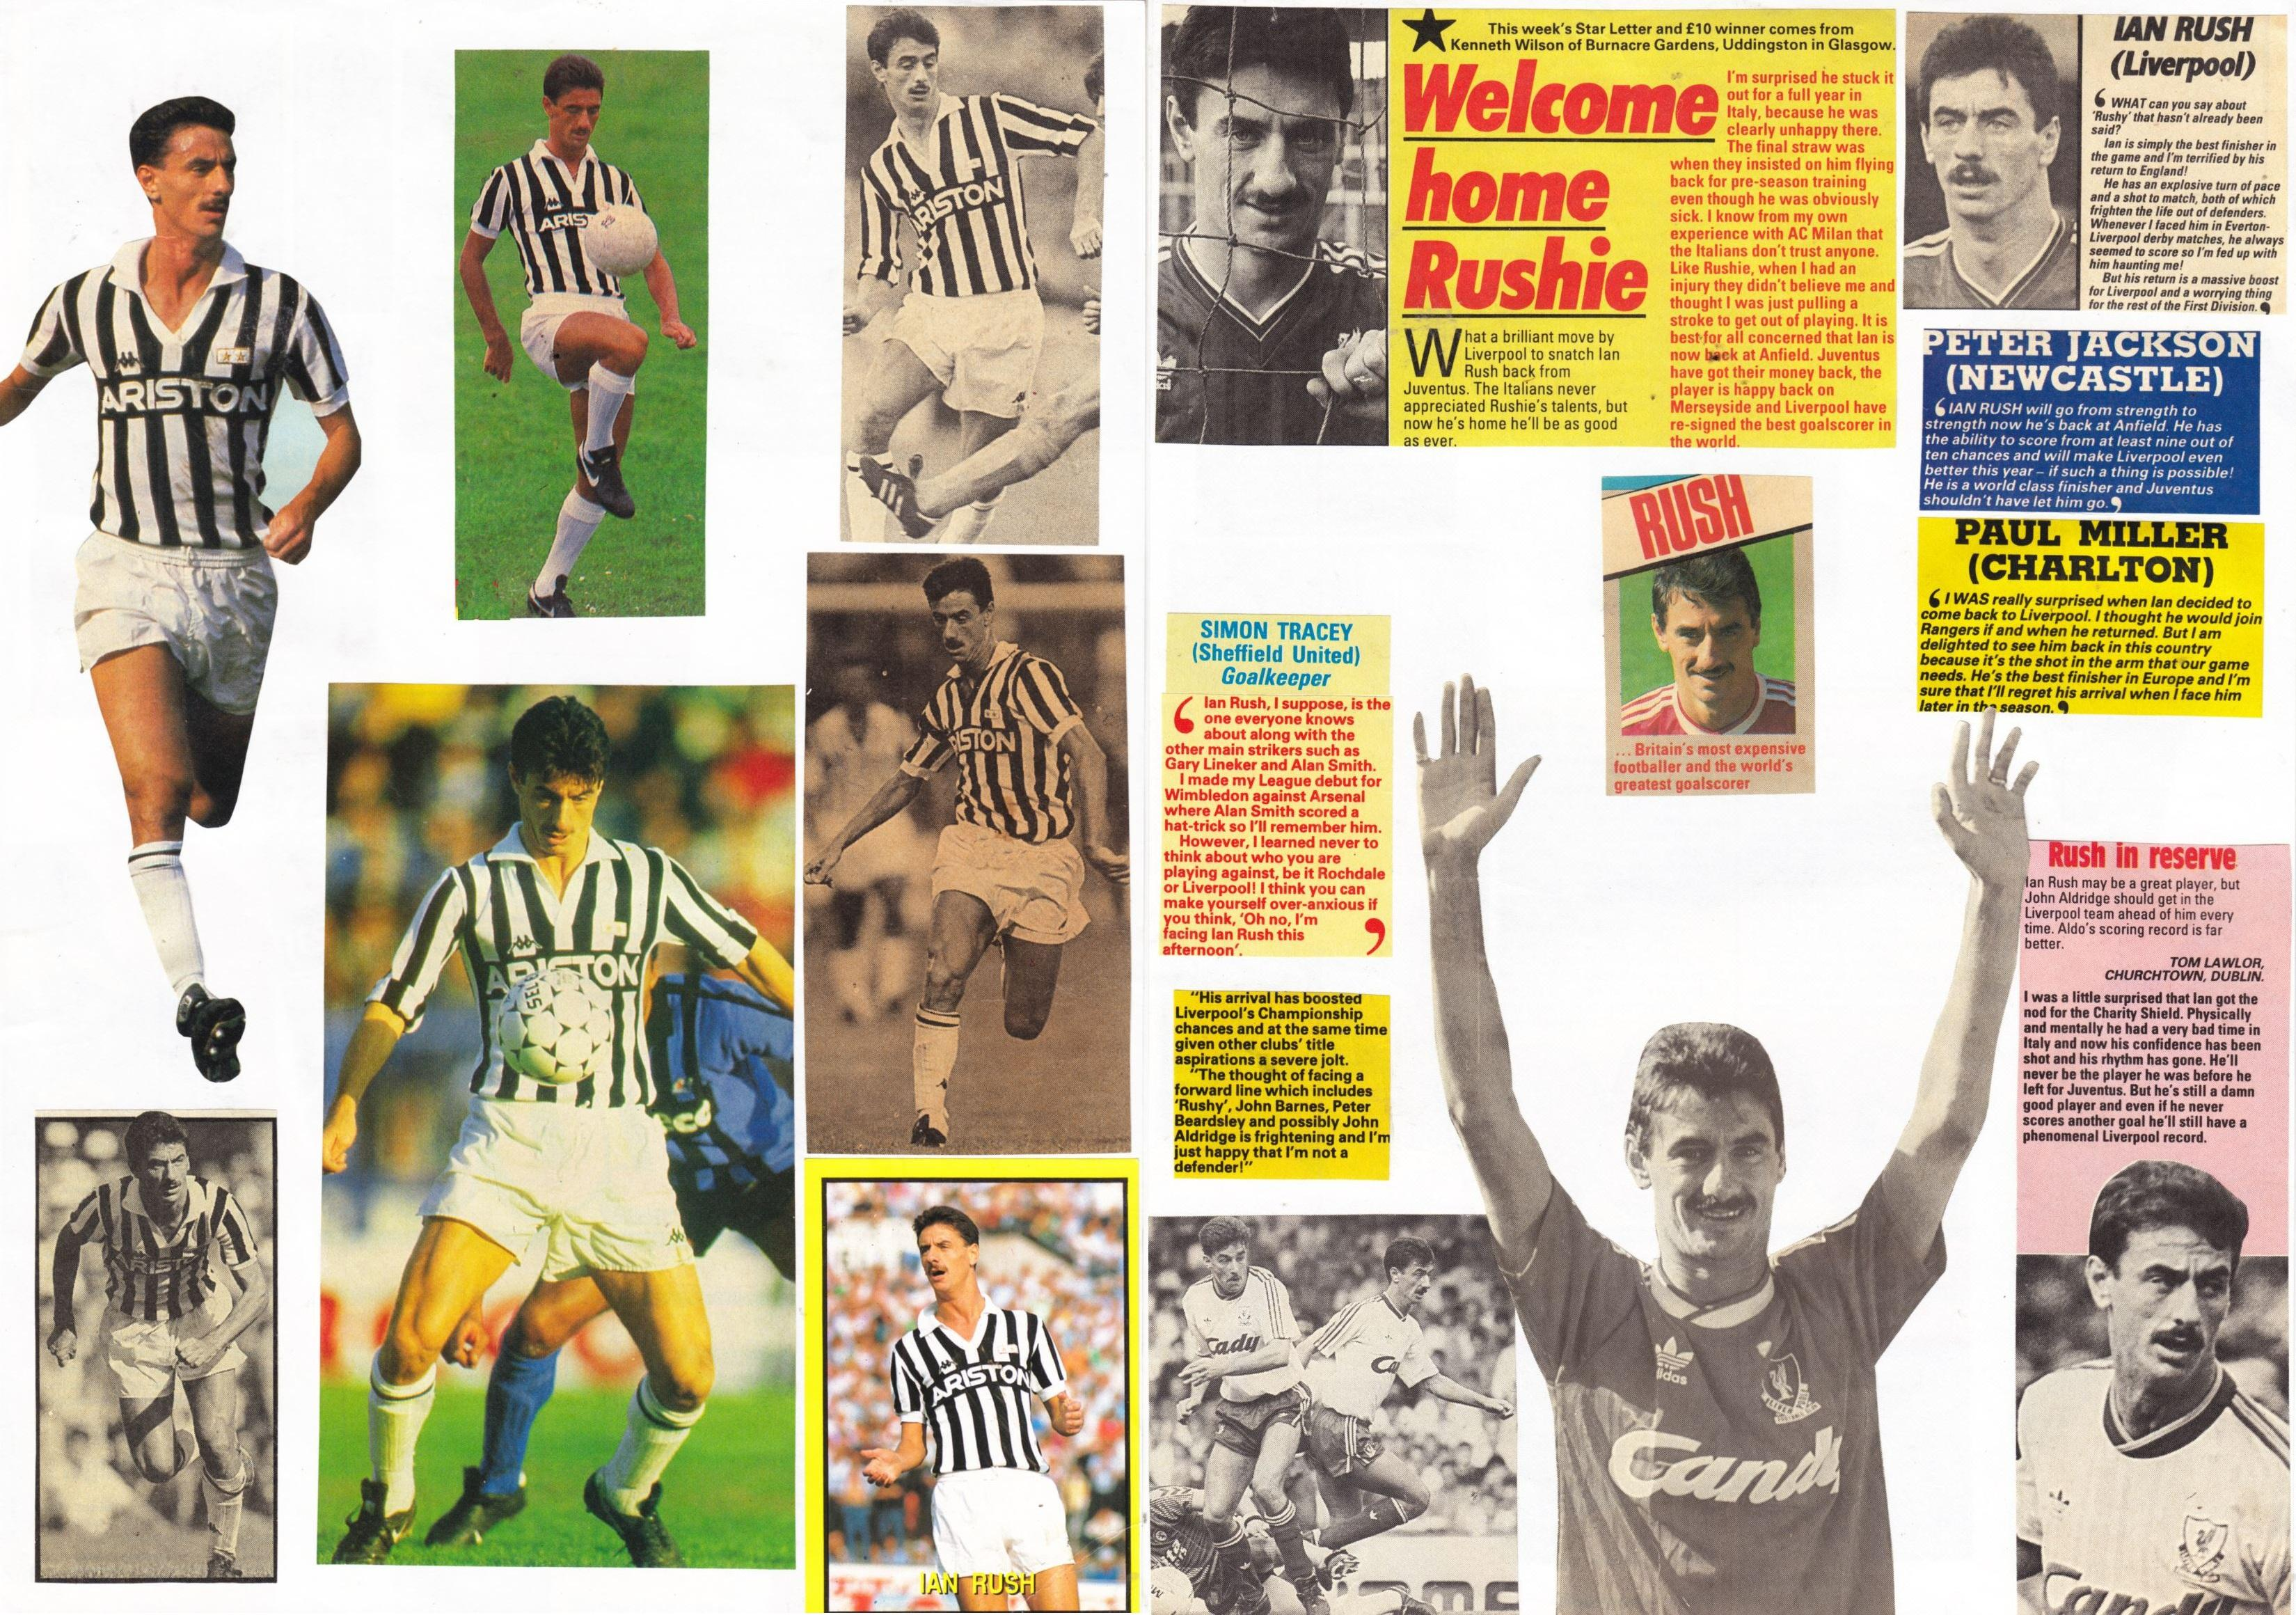 Pages from Arnie's scrapbook (editor of LFChistory.net)